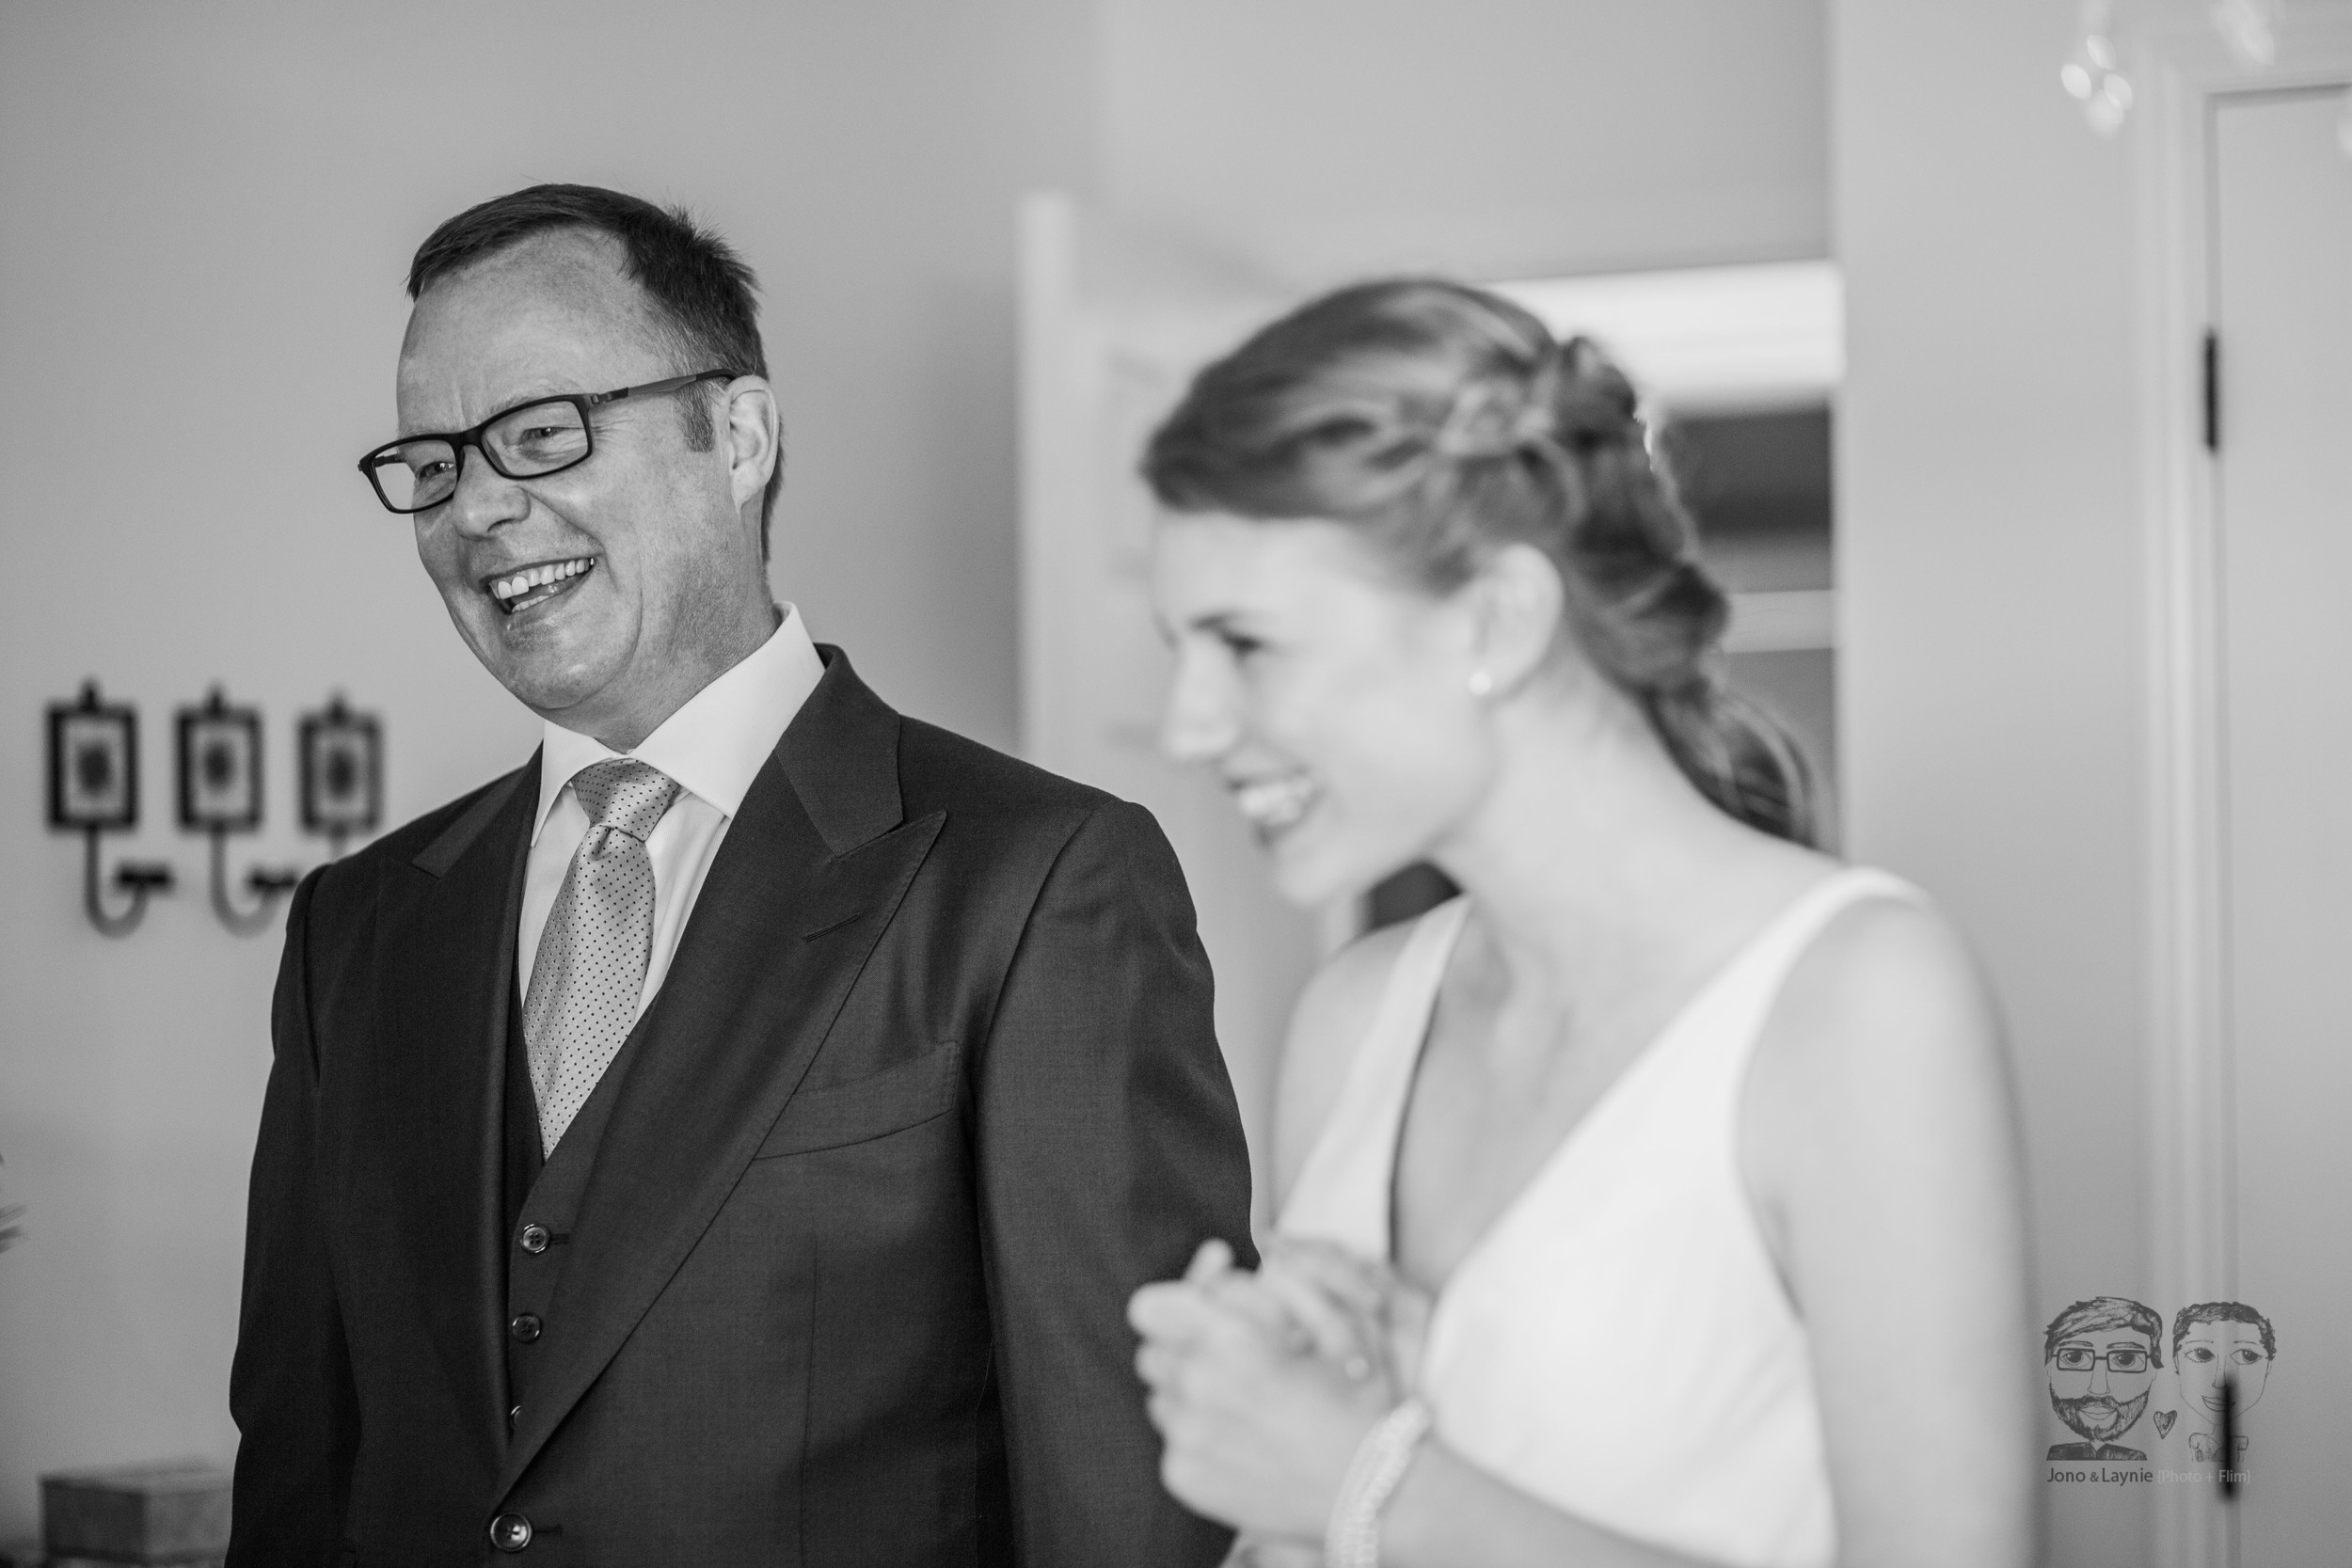 015Toronto Wedding Photographers and Videographers-Jono & Laynie Co.jpg